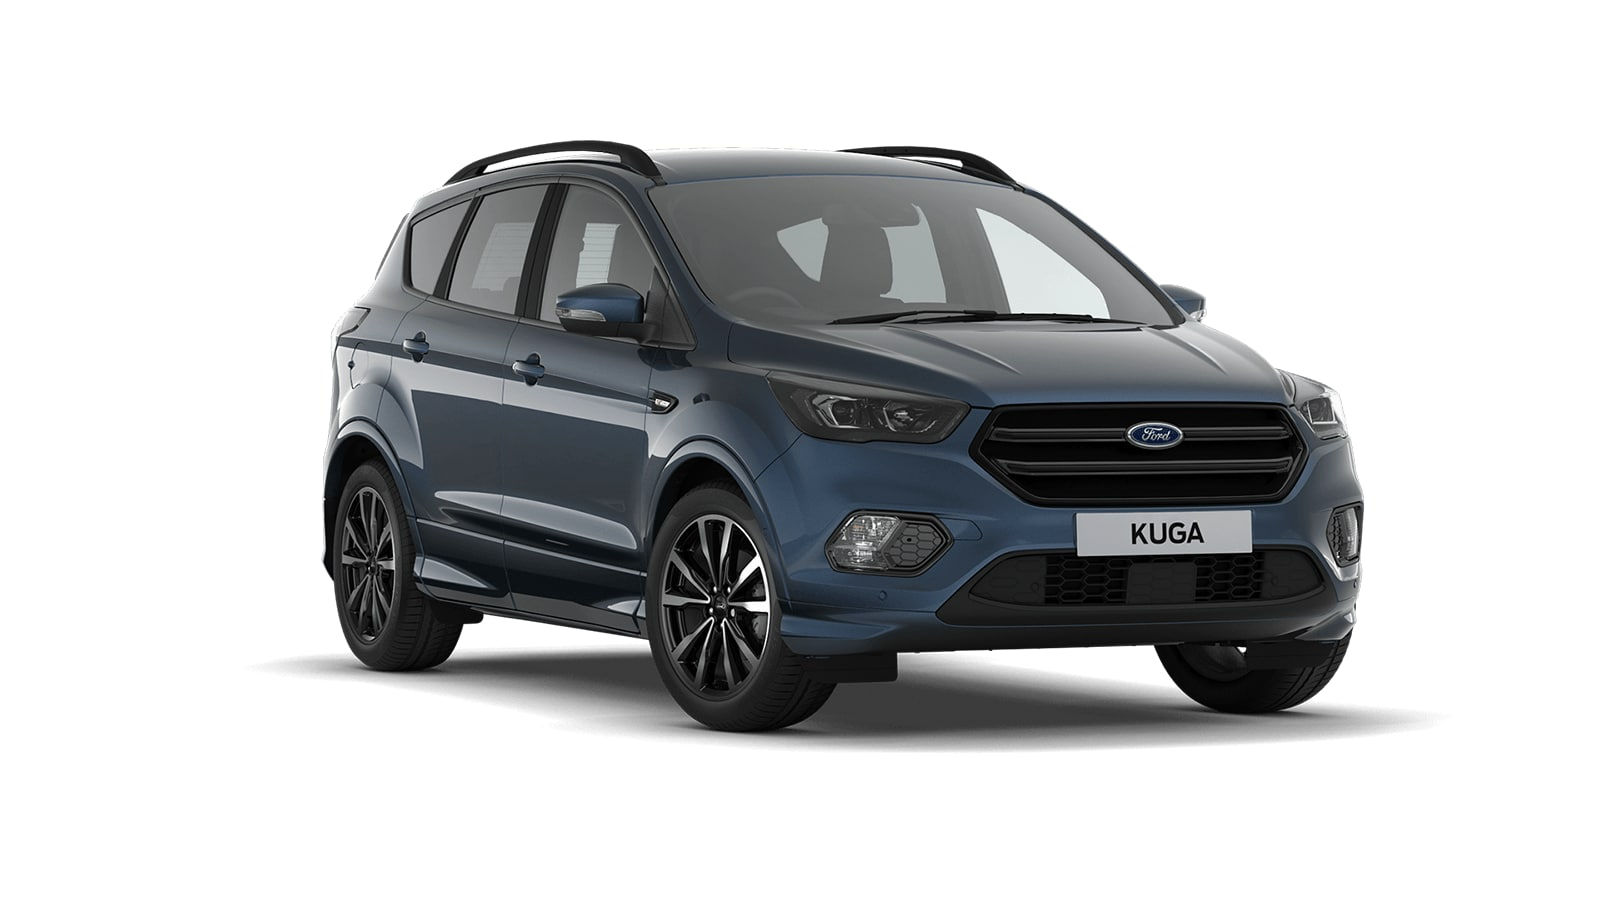 https://www.dealerinternet.co.uk/images/KUGA/2019.75/5%20Door/ST-Line/CHROME-BLUE.png